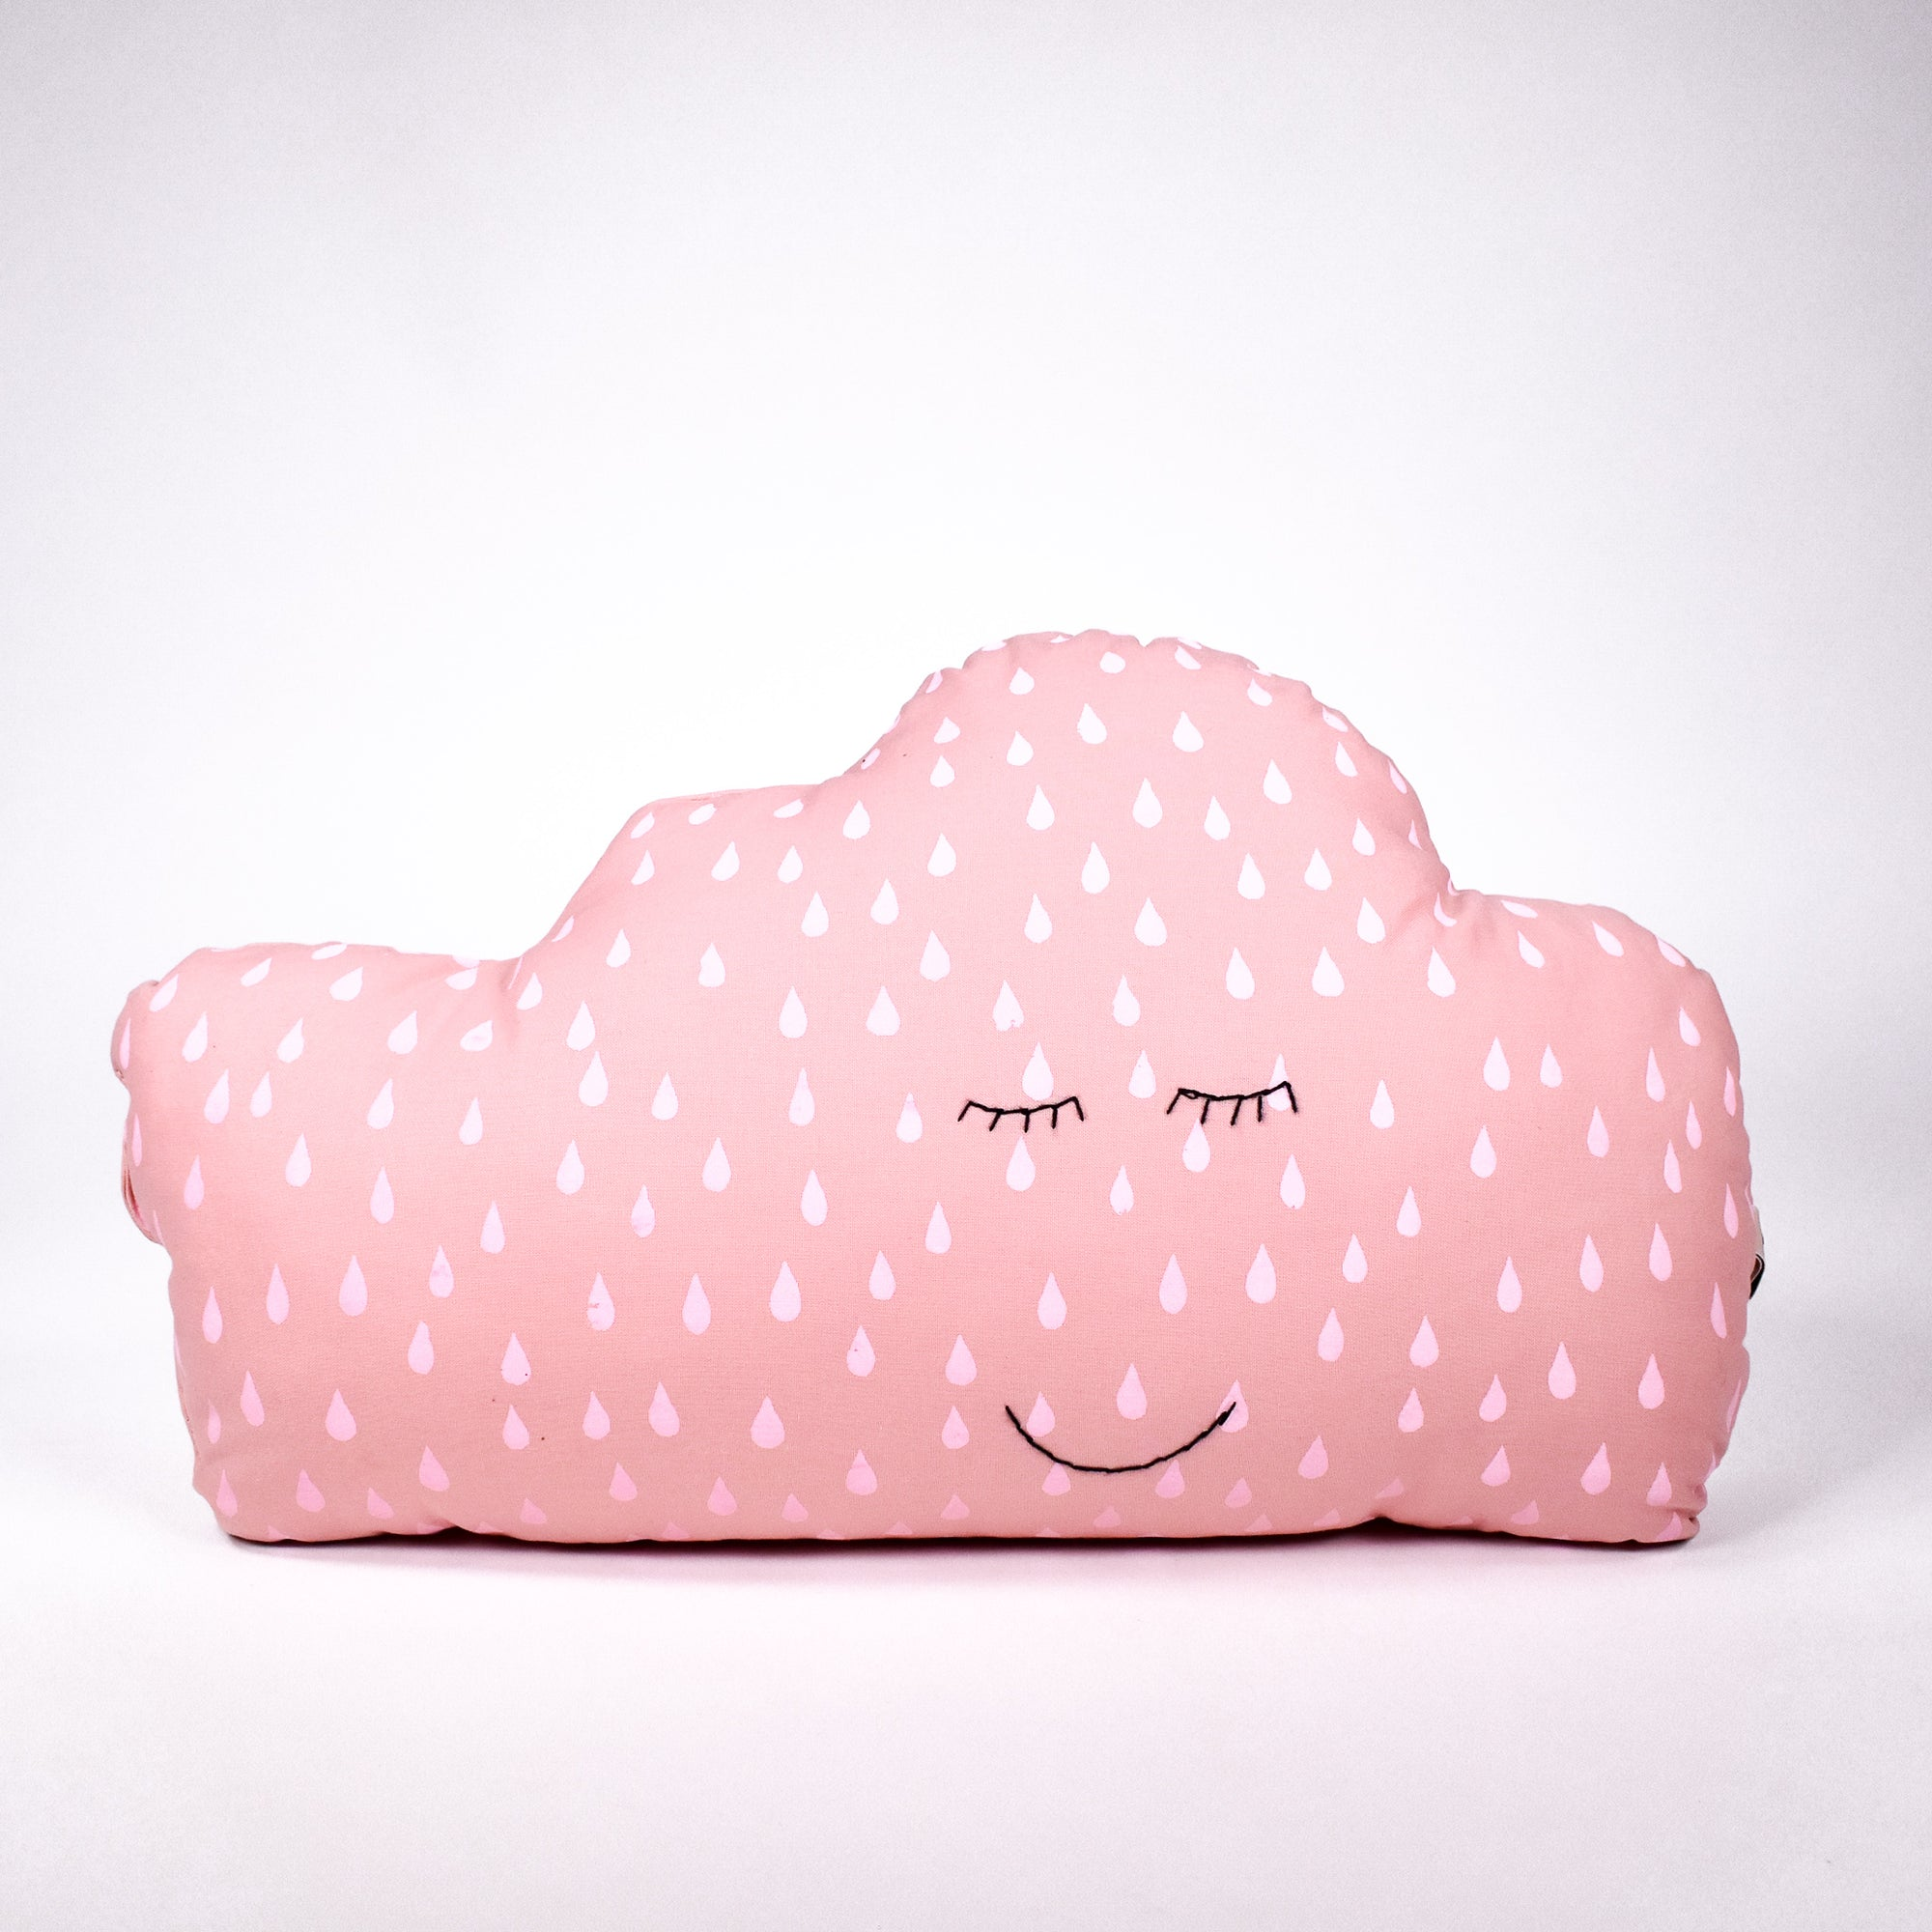 Cuddly Cloud Pillow - Rug & Weave